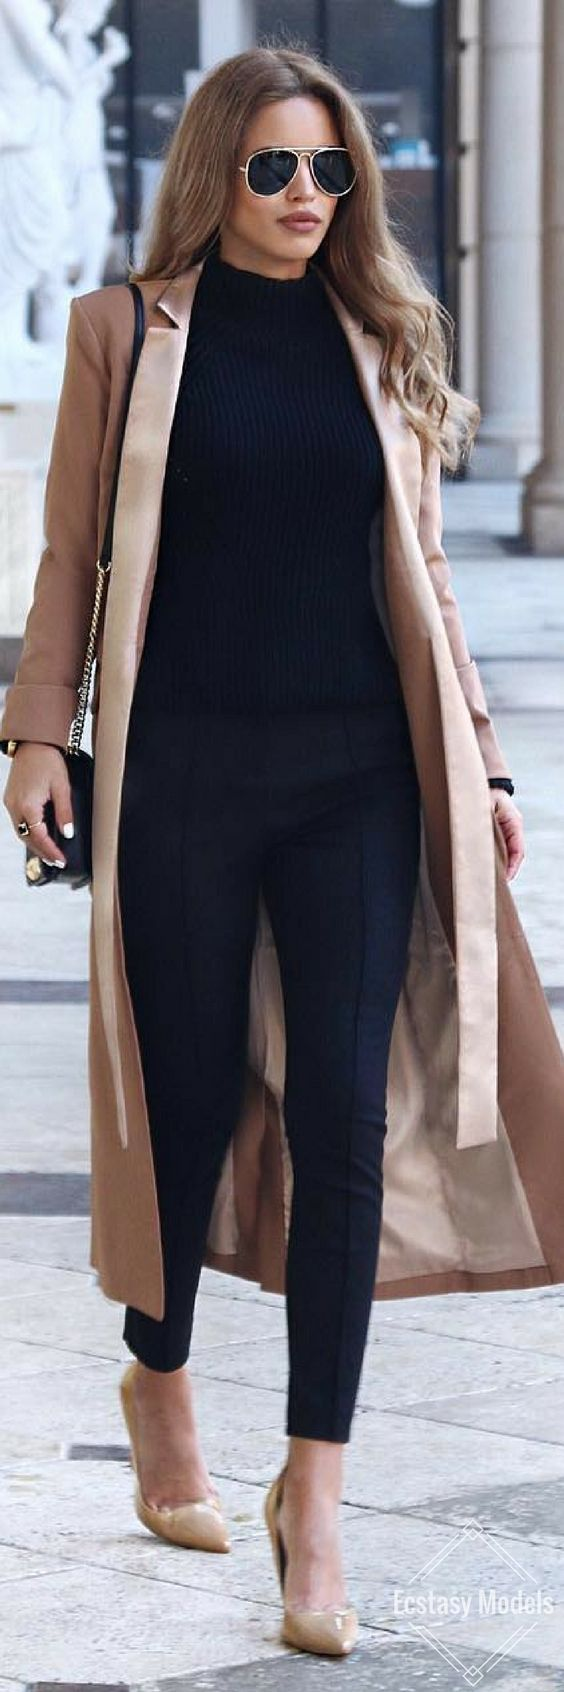 For A Simple Yet Stylish Work Look Try All Black With Camel Colored Shoes And Coat Let Daily